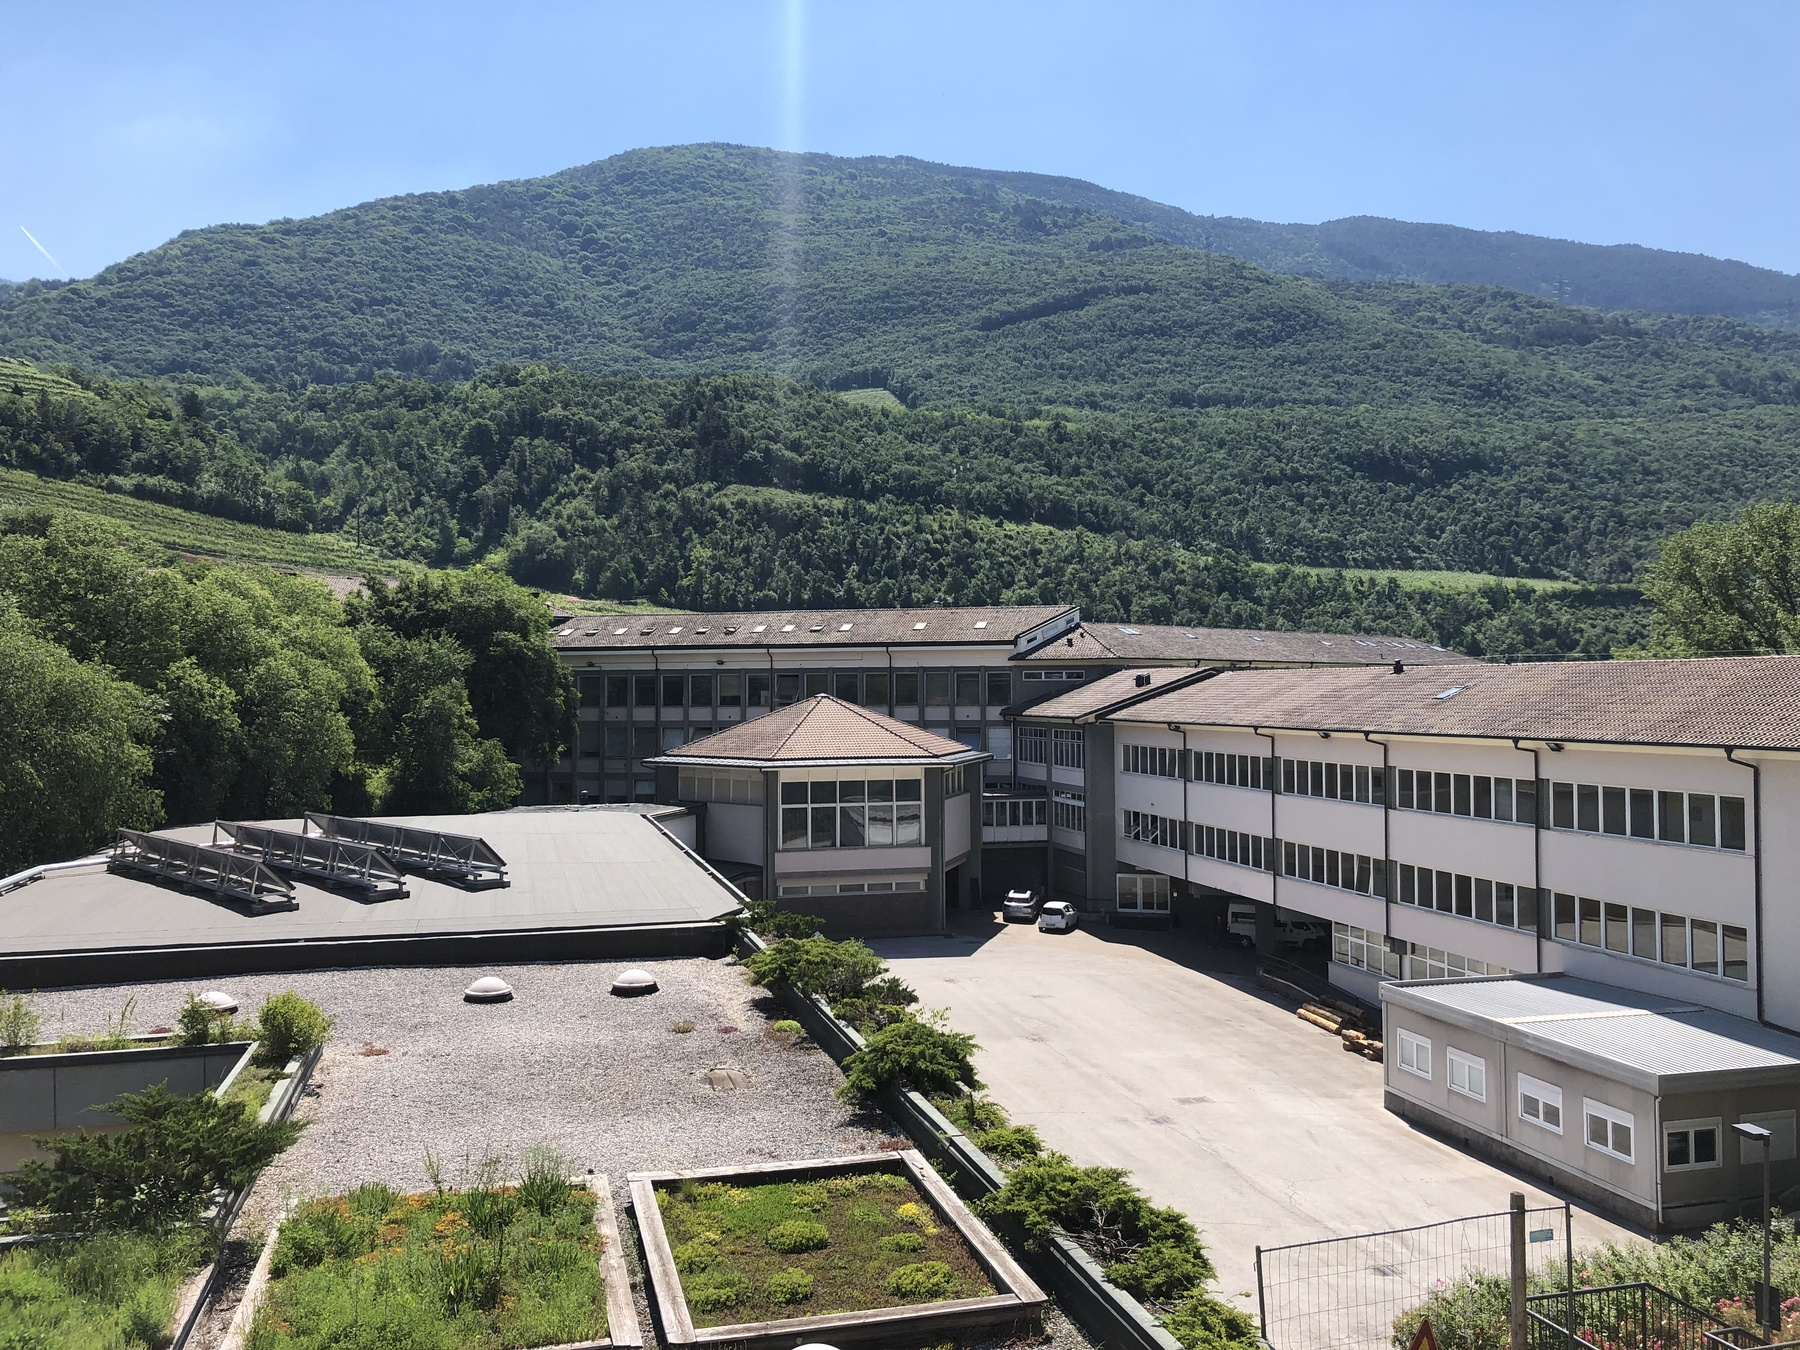 The Institute seen from above